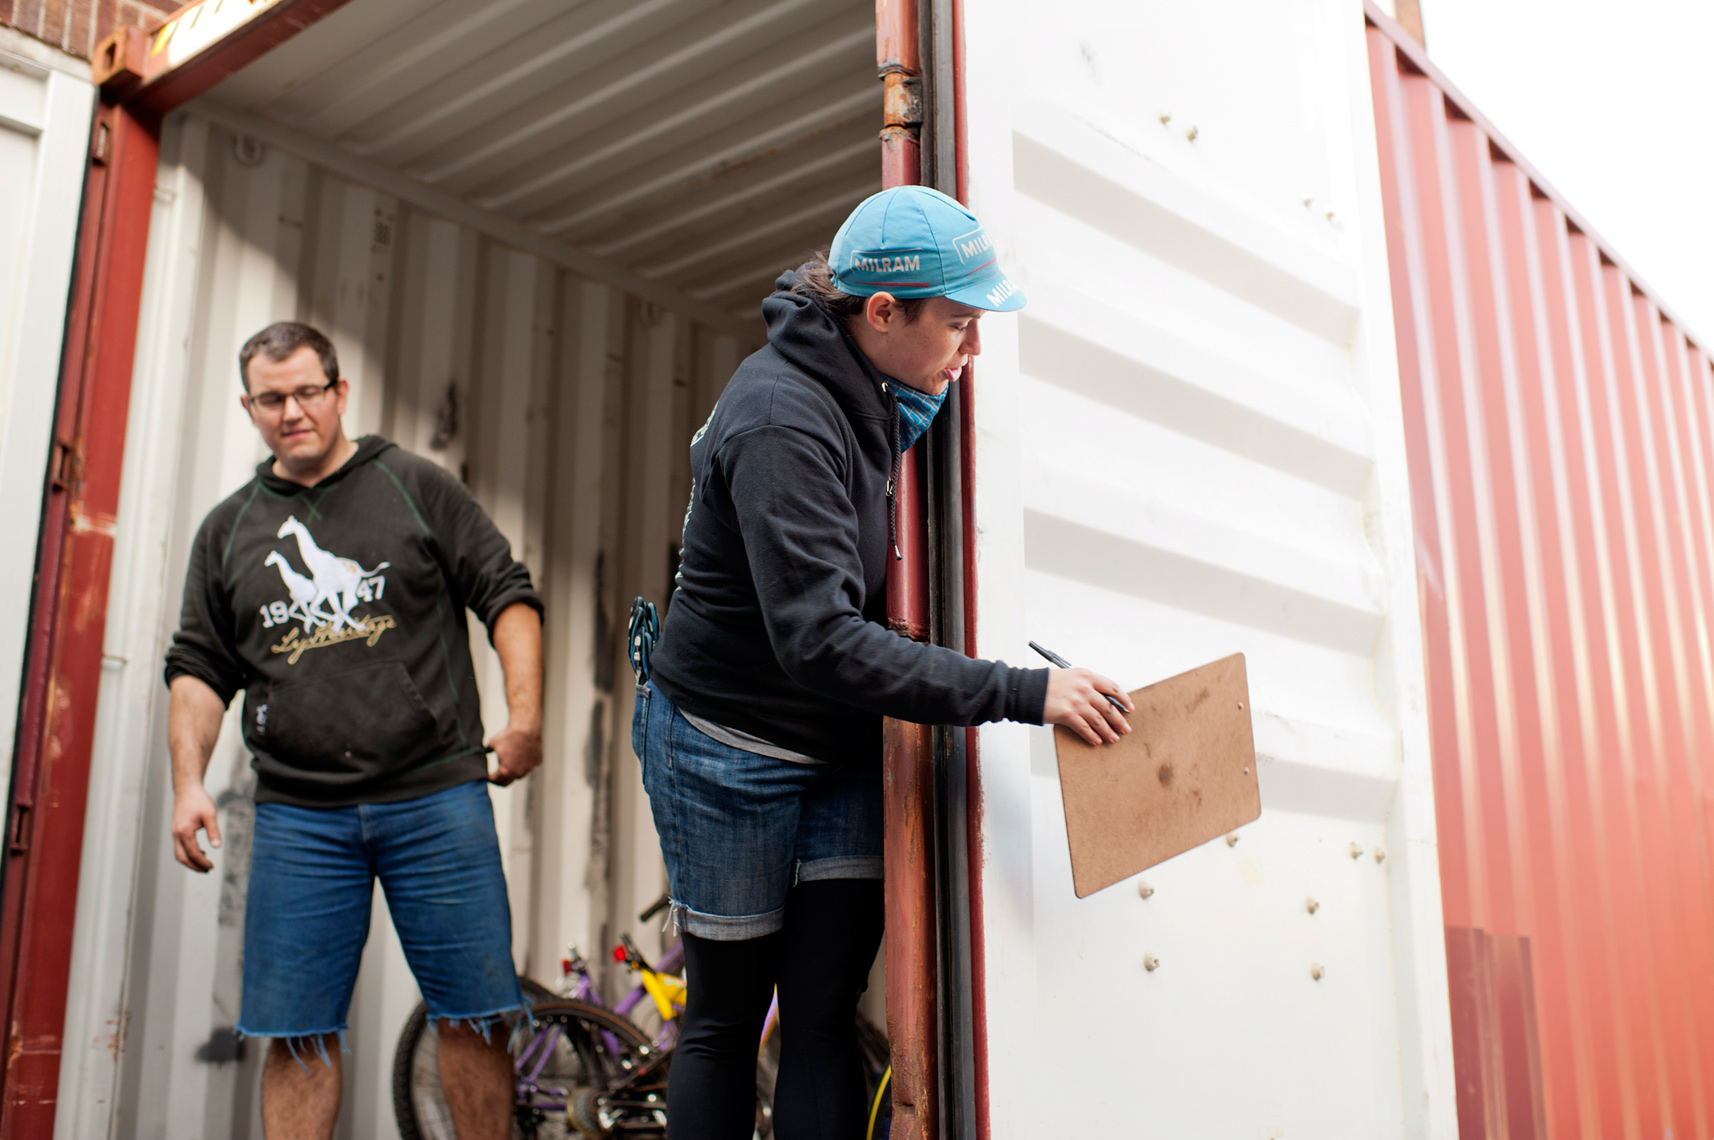 volunteers loading container with used bikes for Bikes Not Bombs in Boston